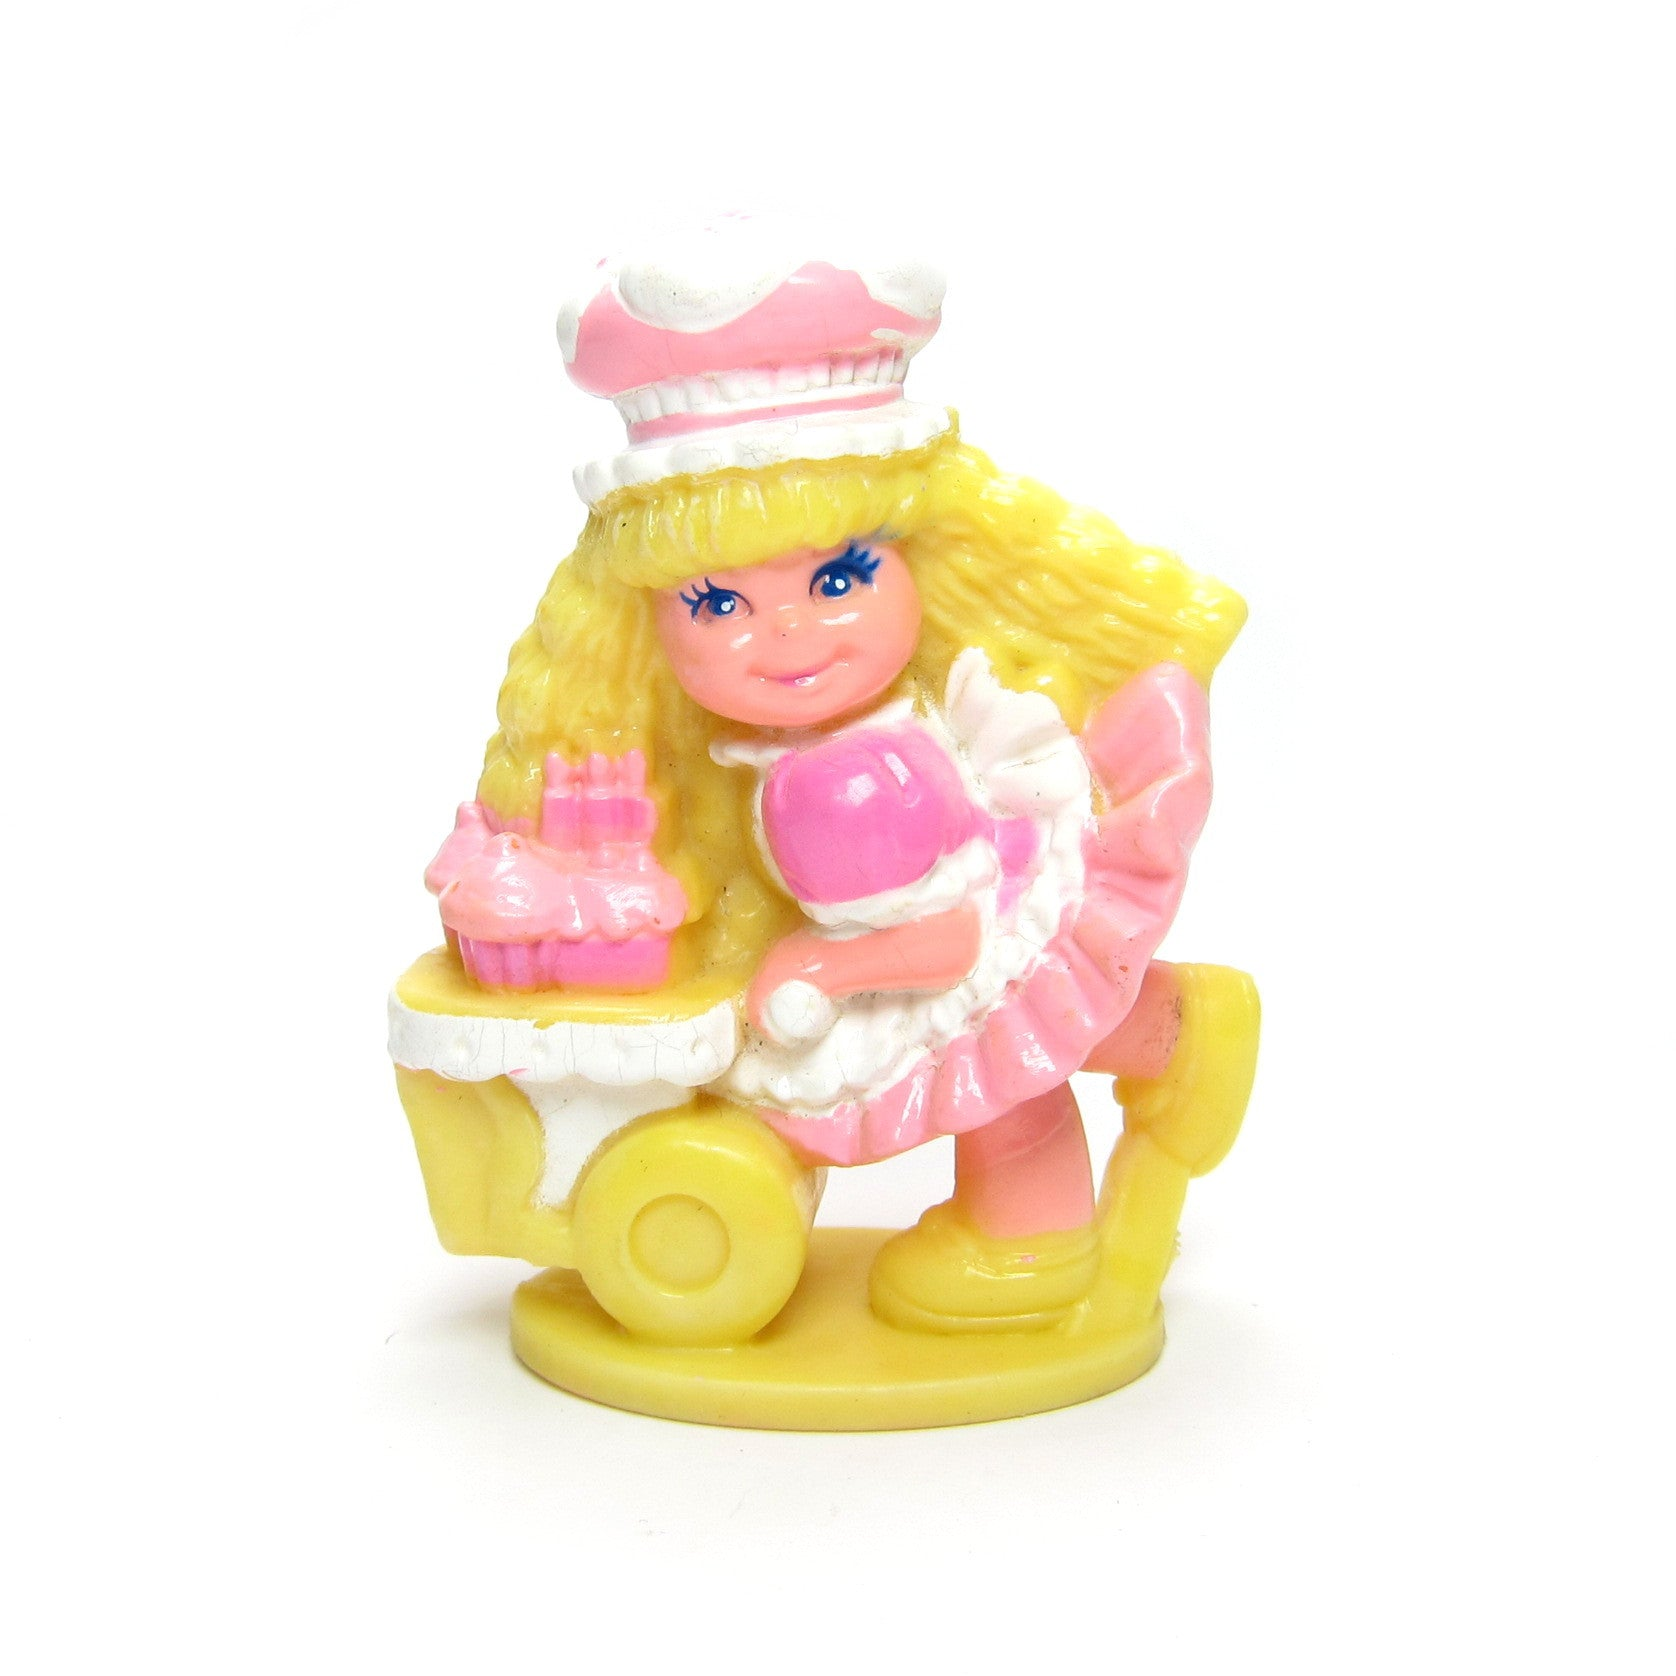 Cherry Merry Muffin miniature figurine with cupcake cart